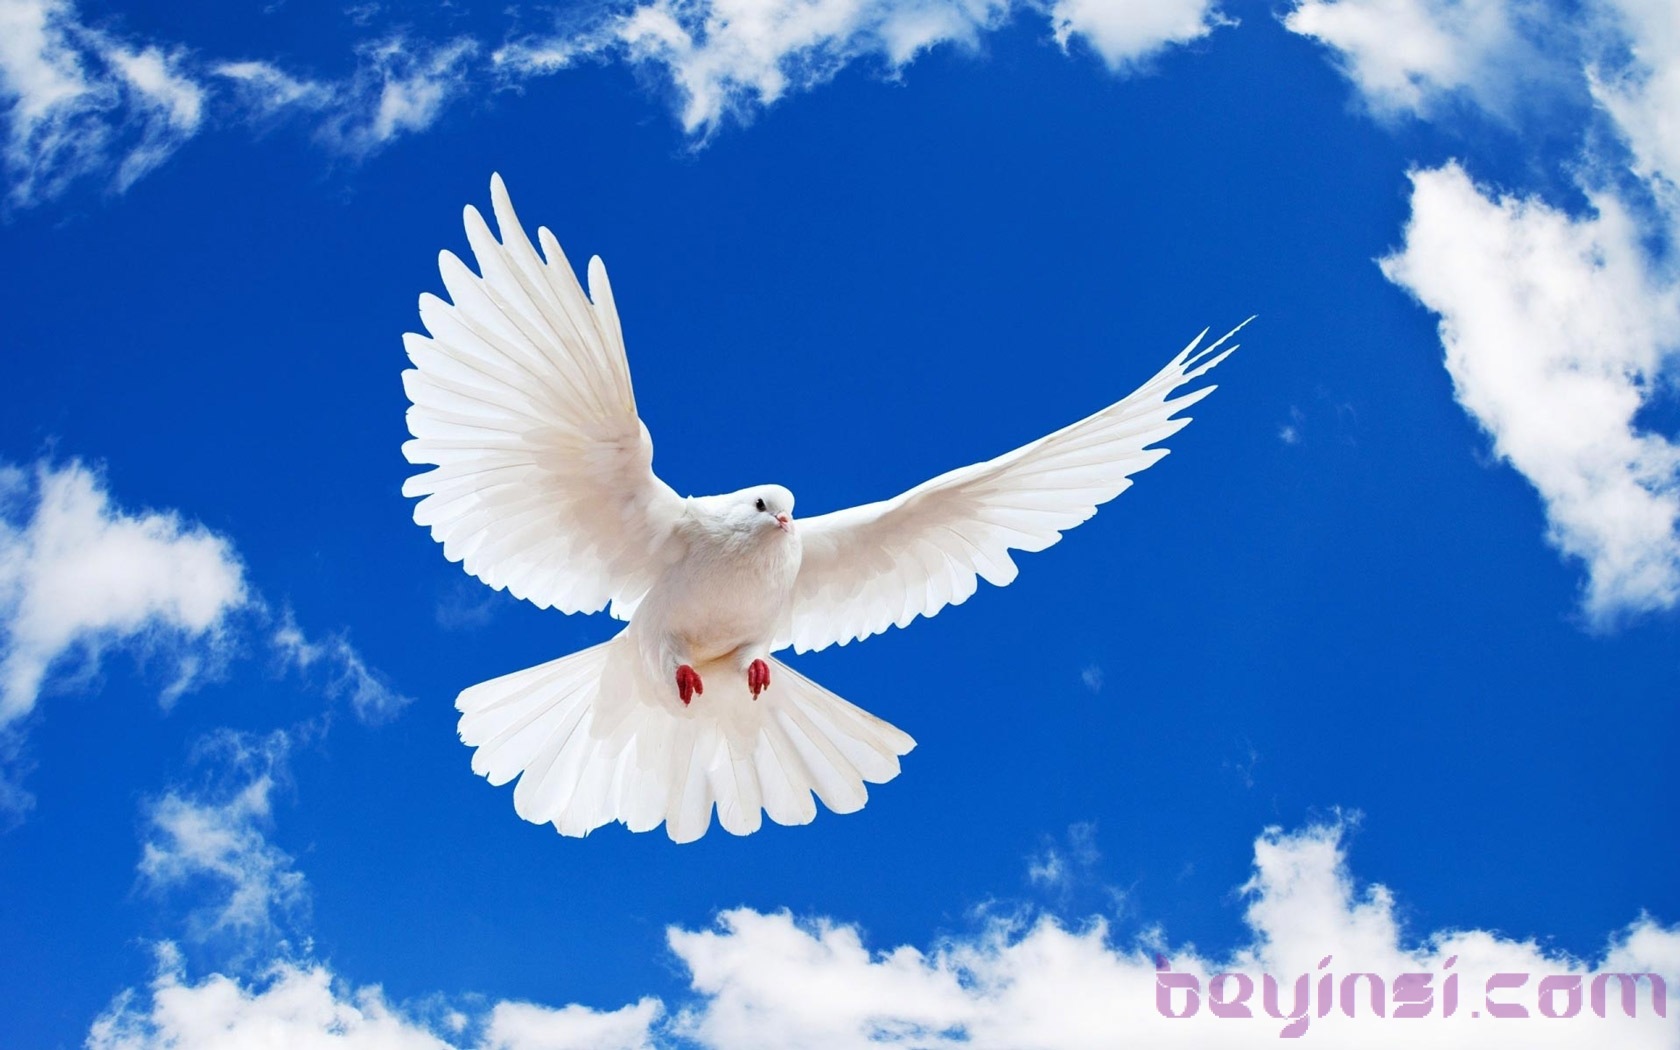 Brautiful-Flying-Pigeon-International-Day-Of-Peace-2015